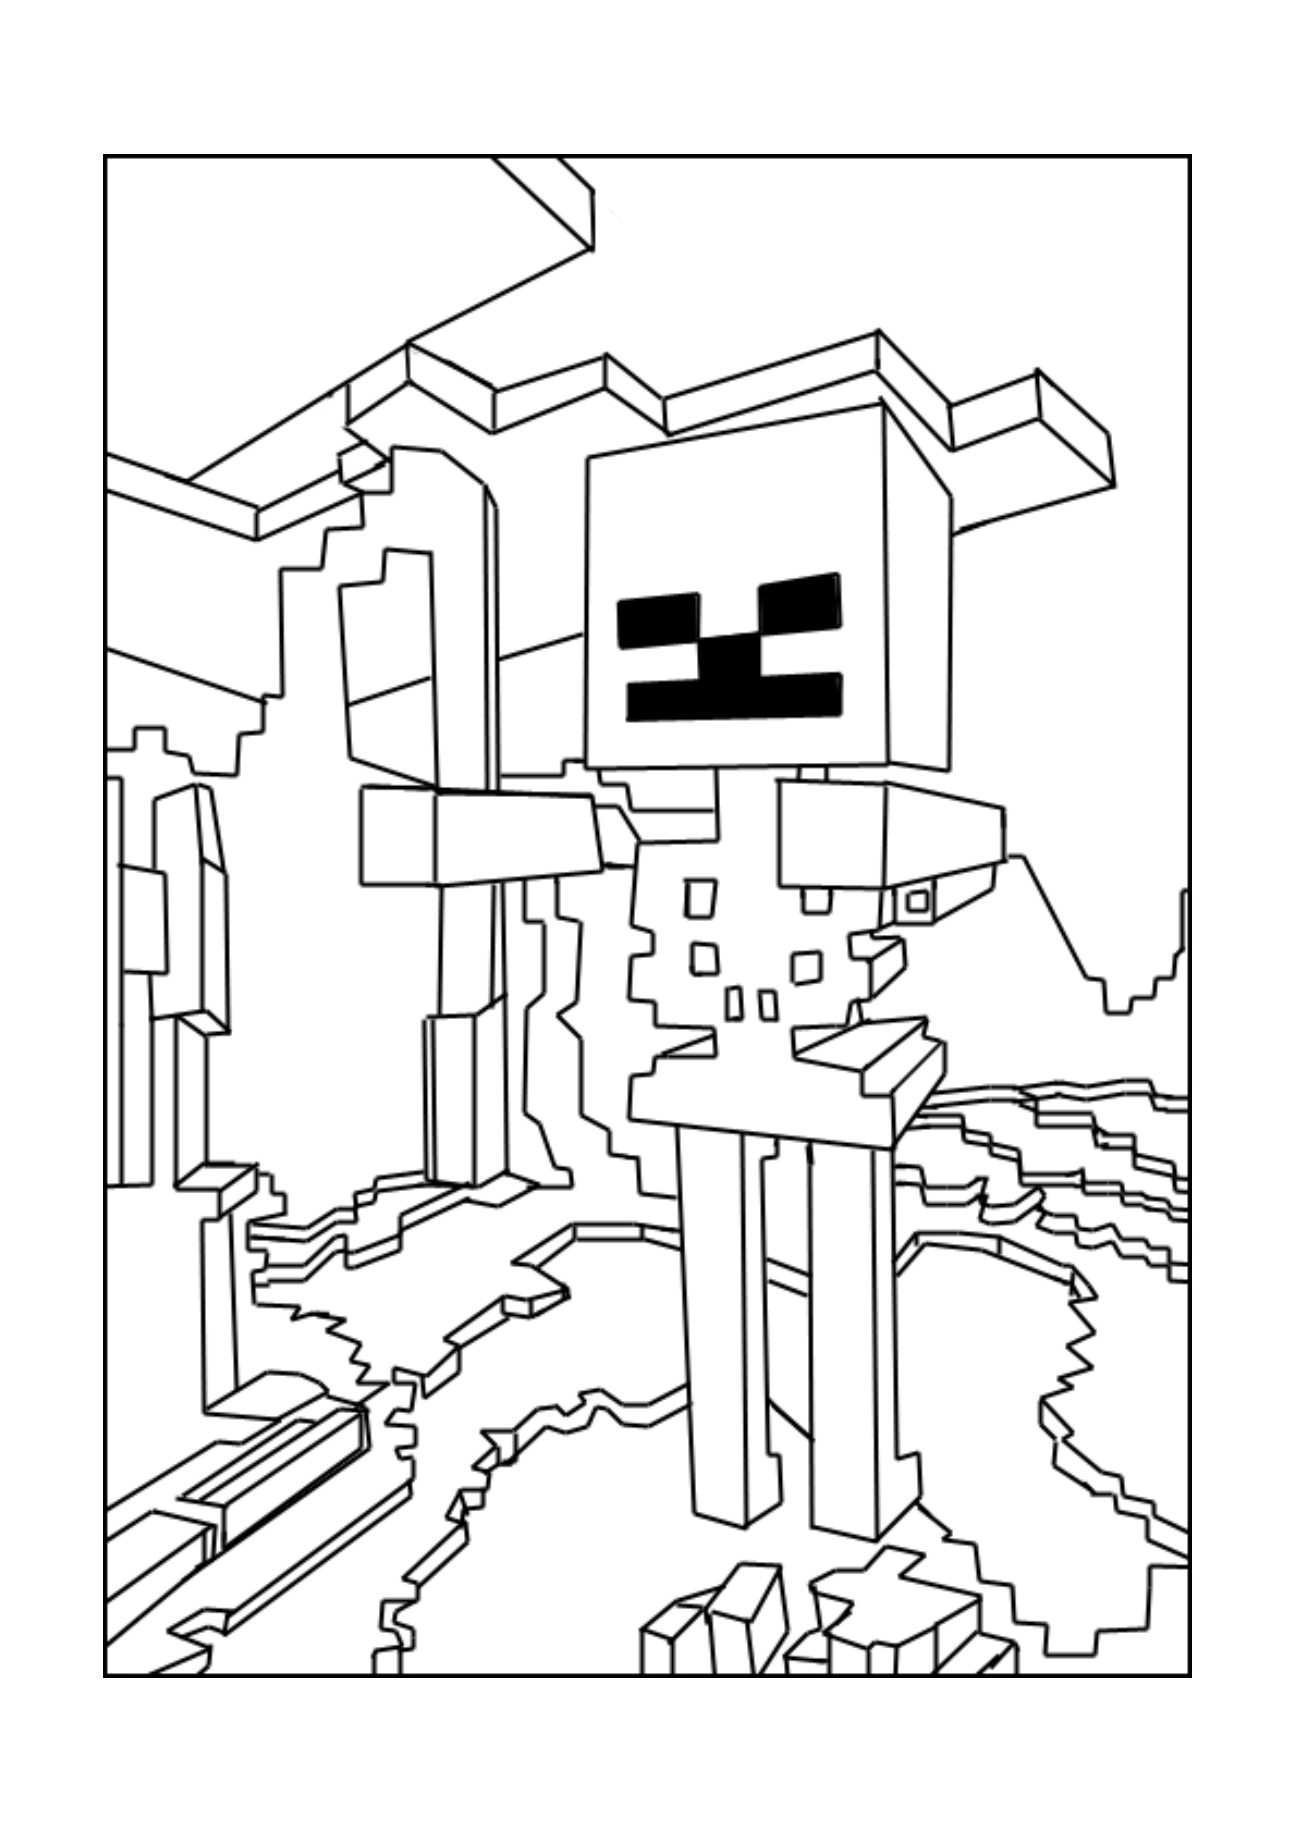 minecraft coloring to print minecraft universe by 11icedragon11 coloring pages printable coloring to minecraft print